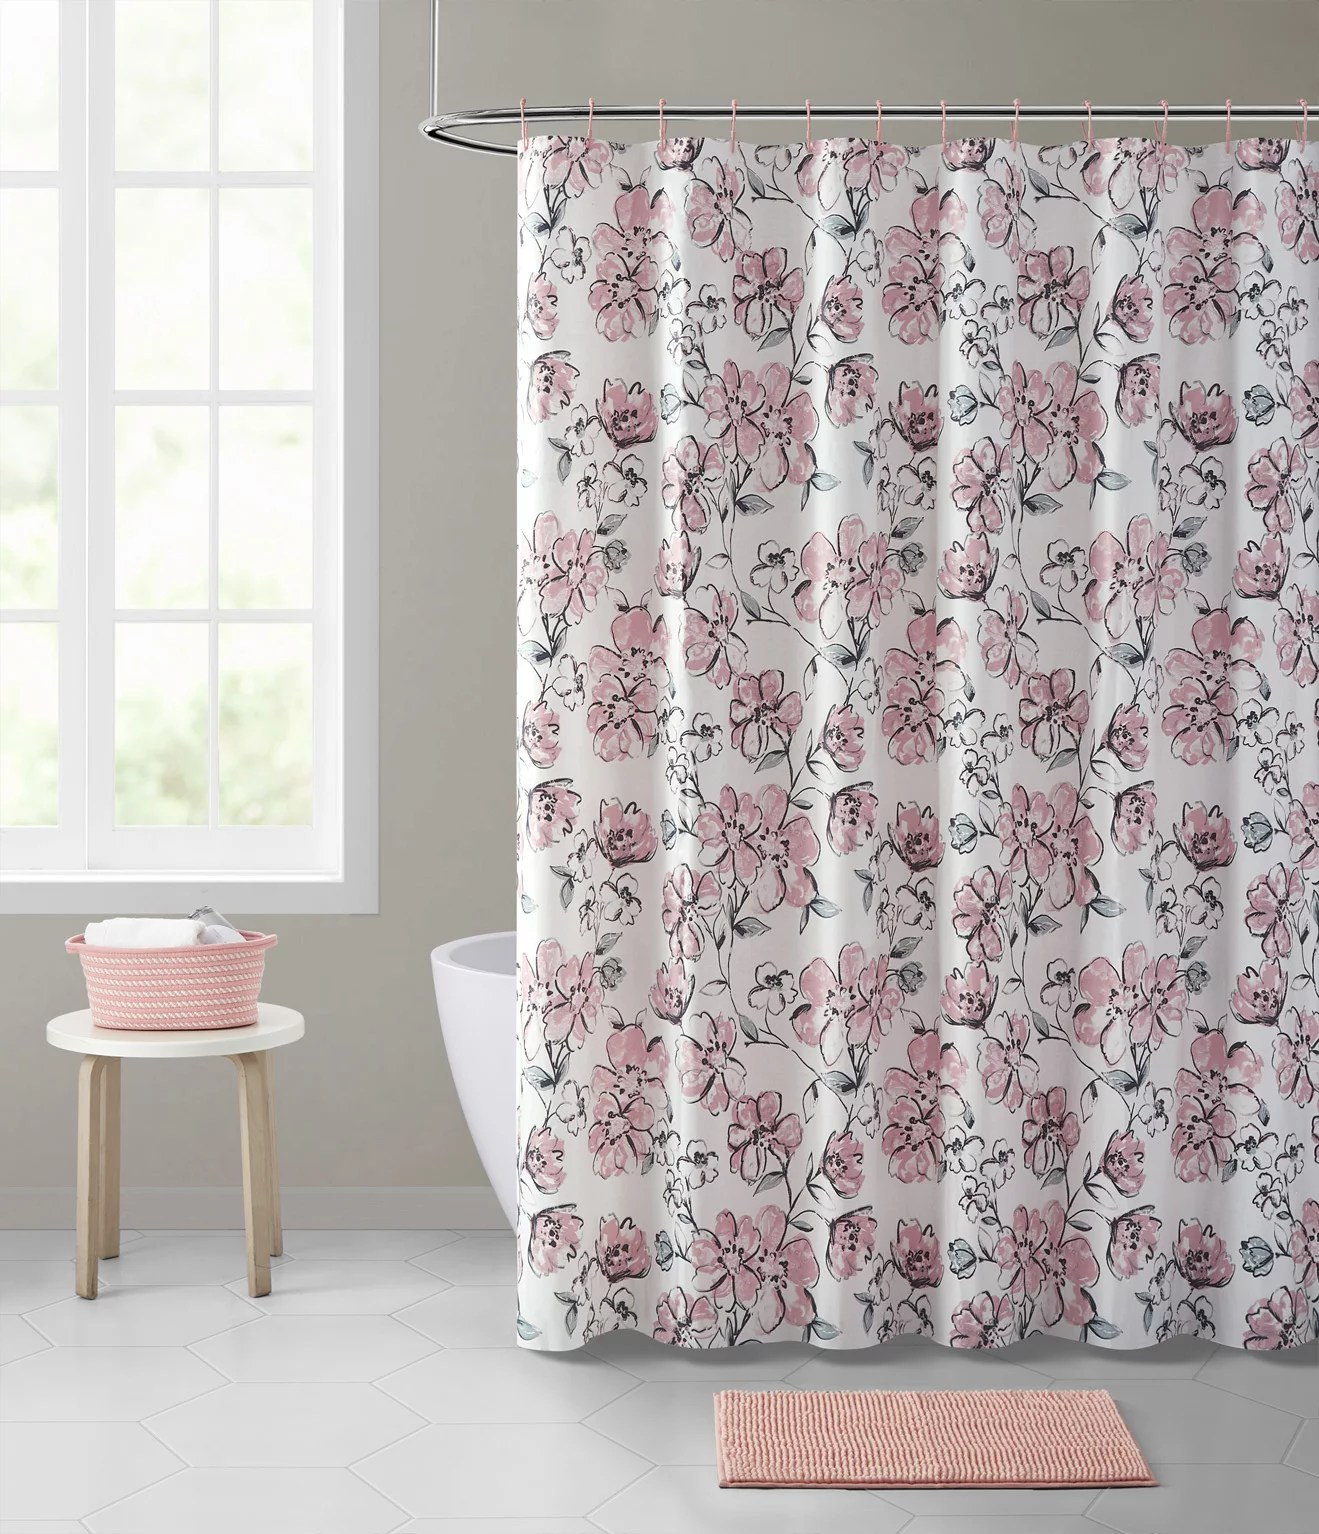 mainstays delilah peva shower curtain 15 piece set with hooks basket and rug